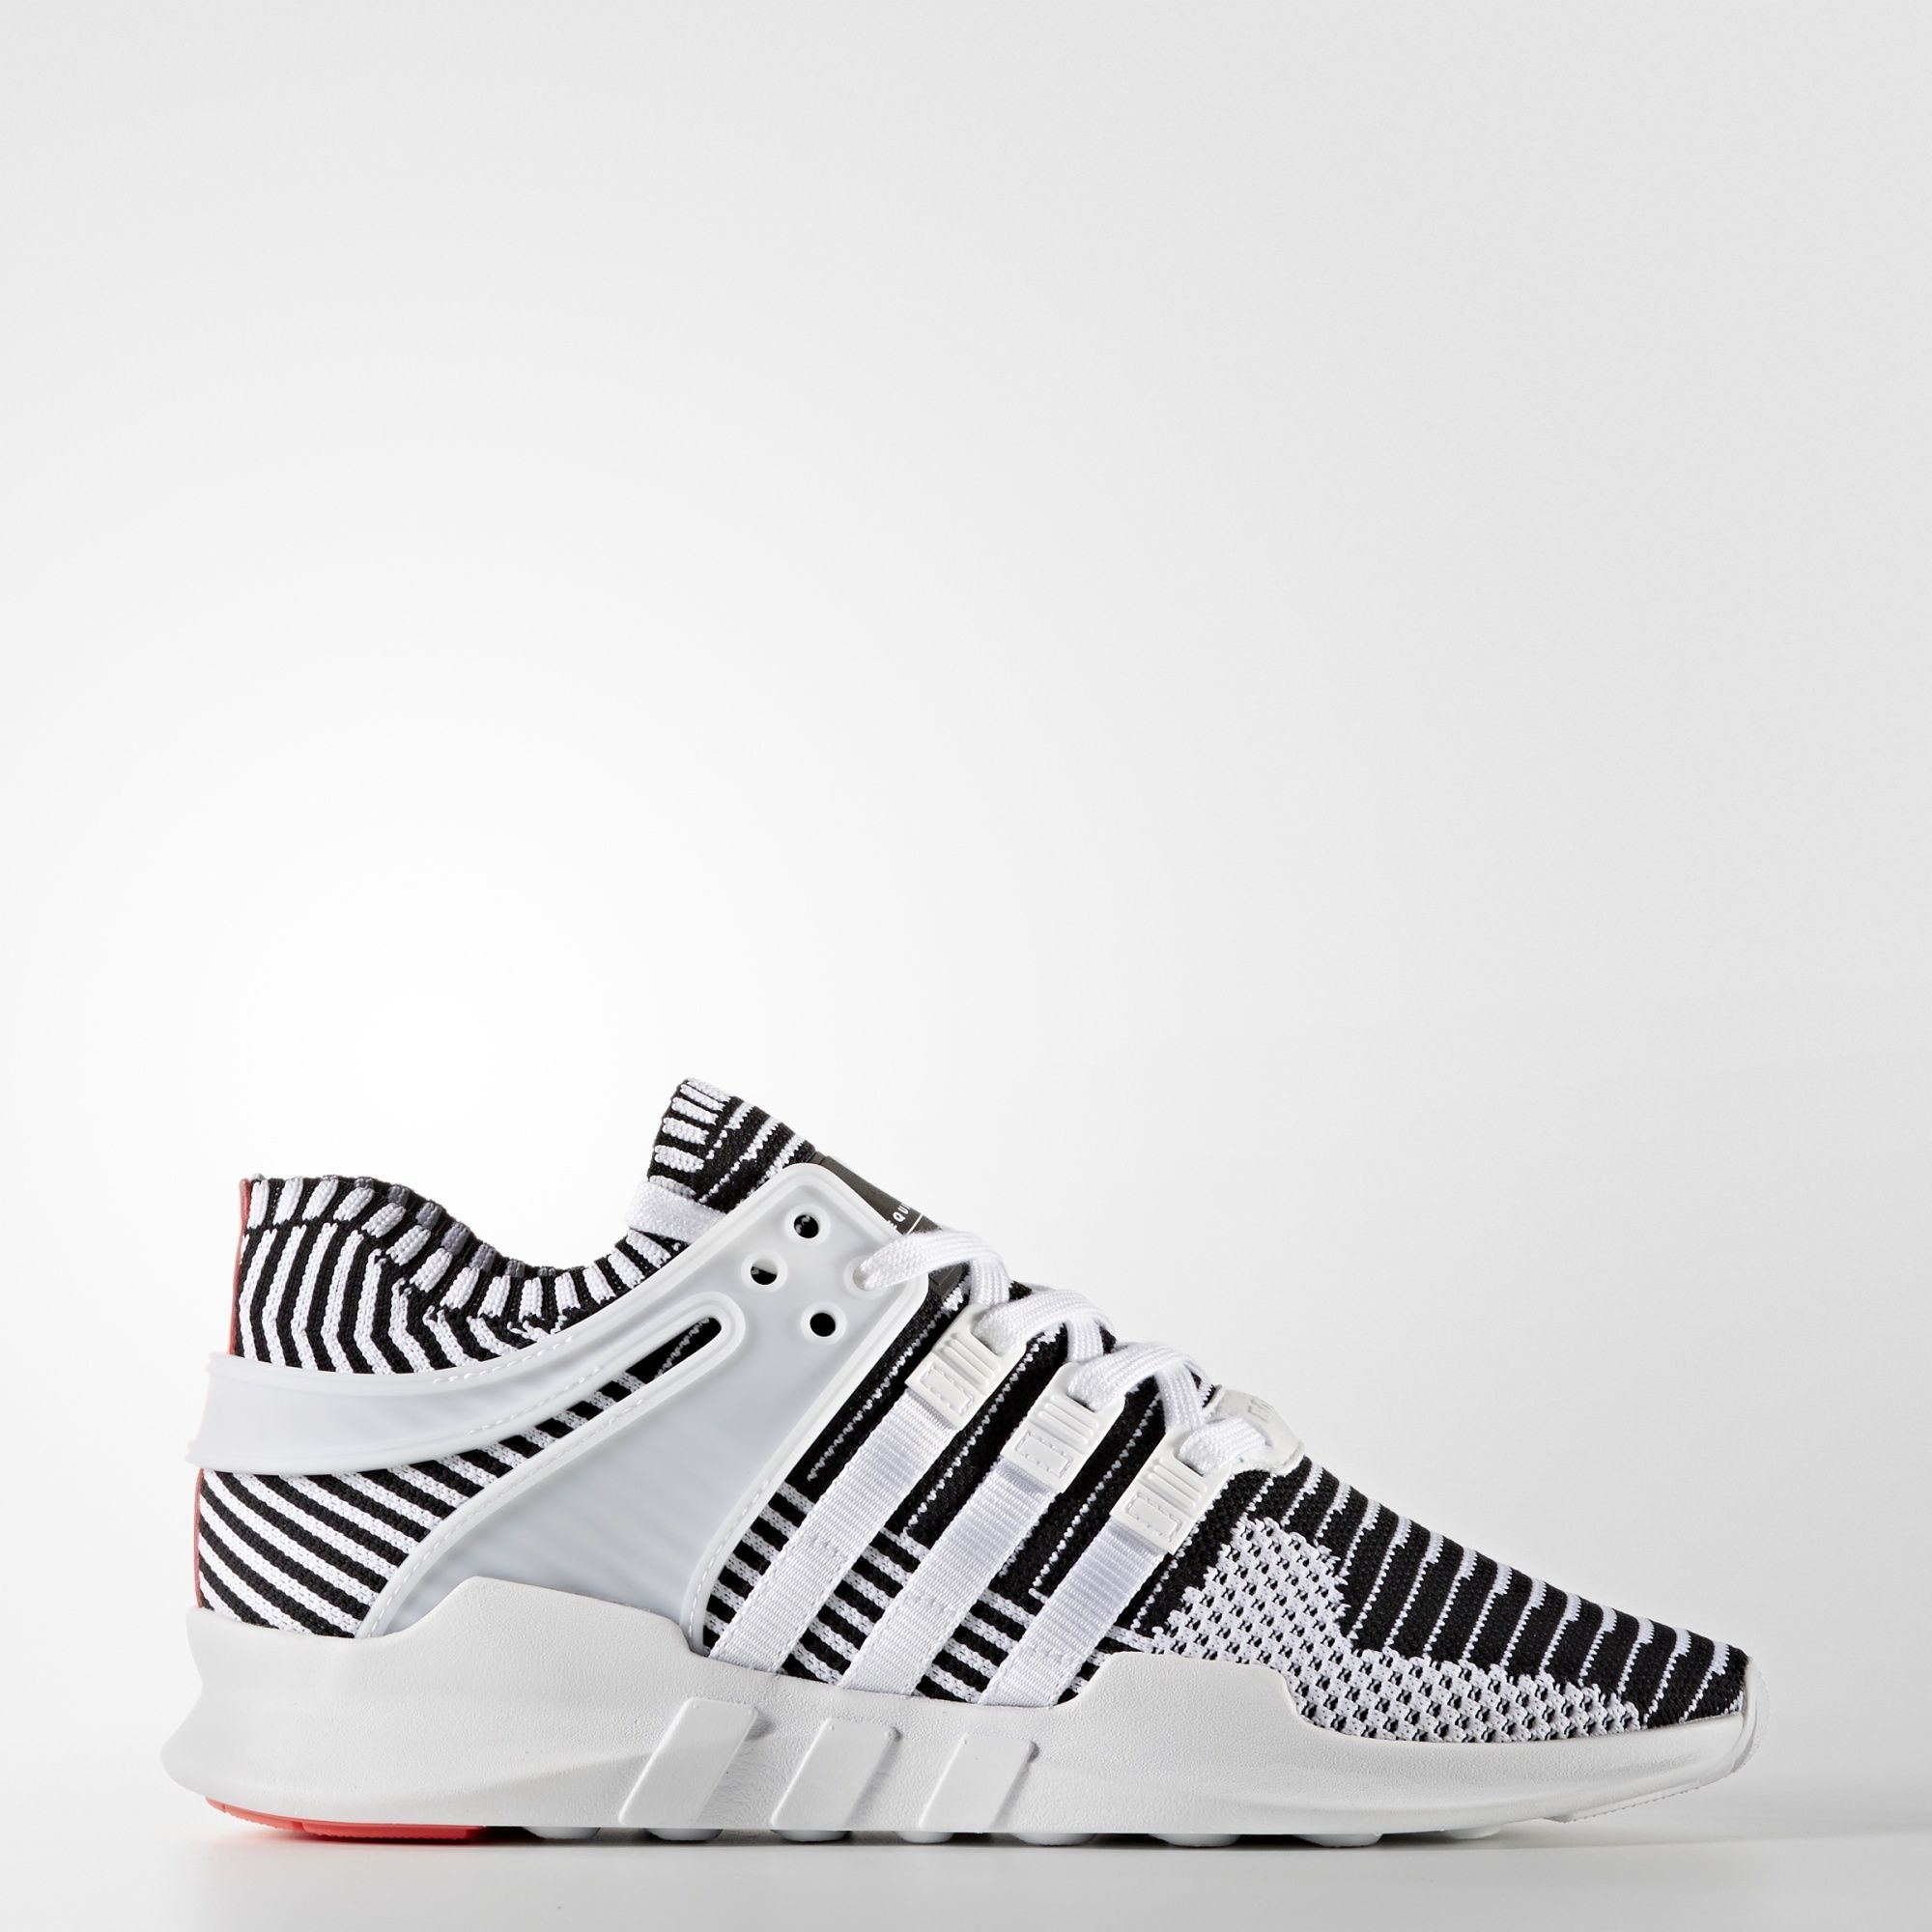 adidas - EQT Support ADV Primeknit Shoes